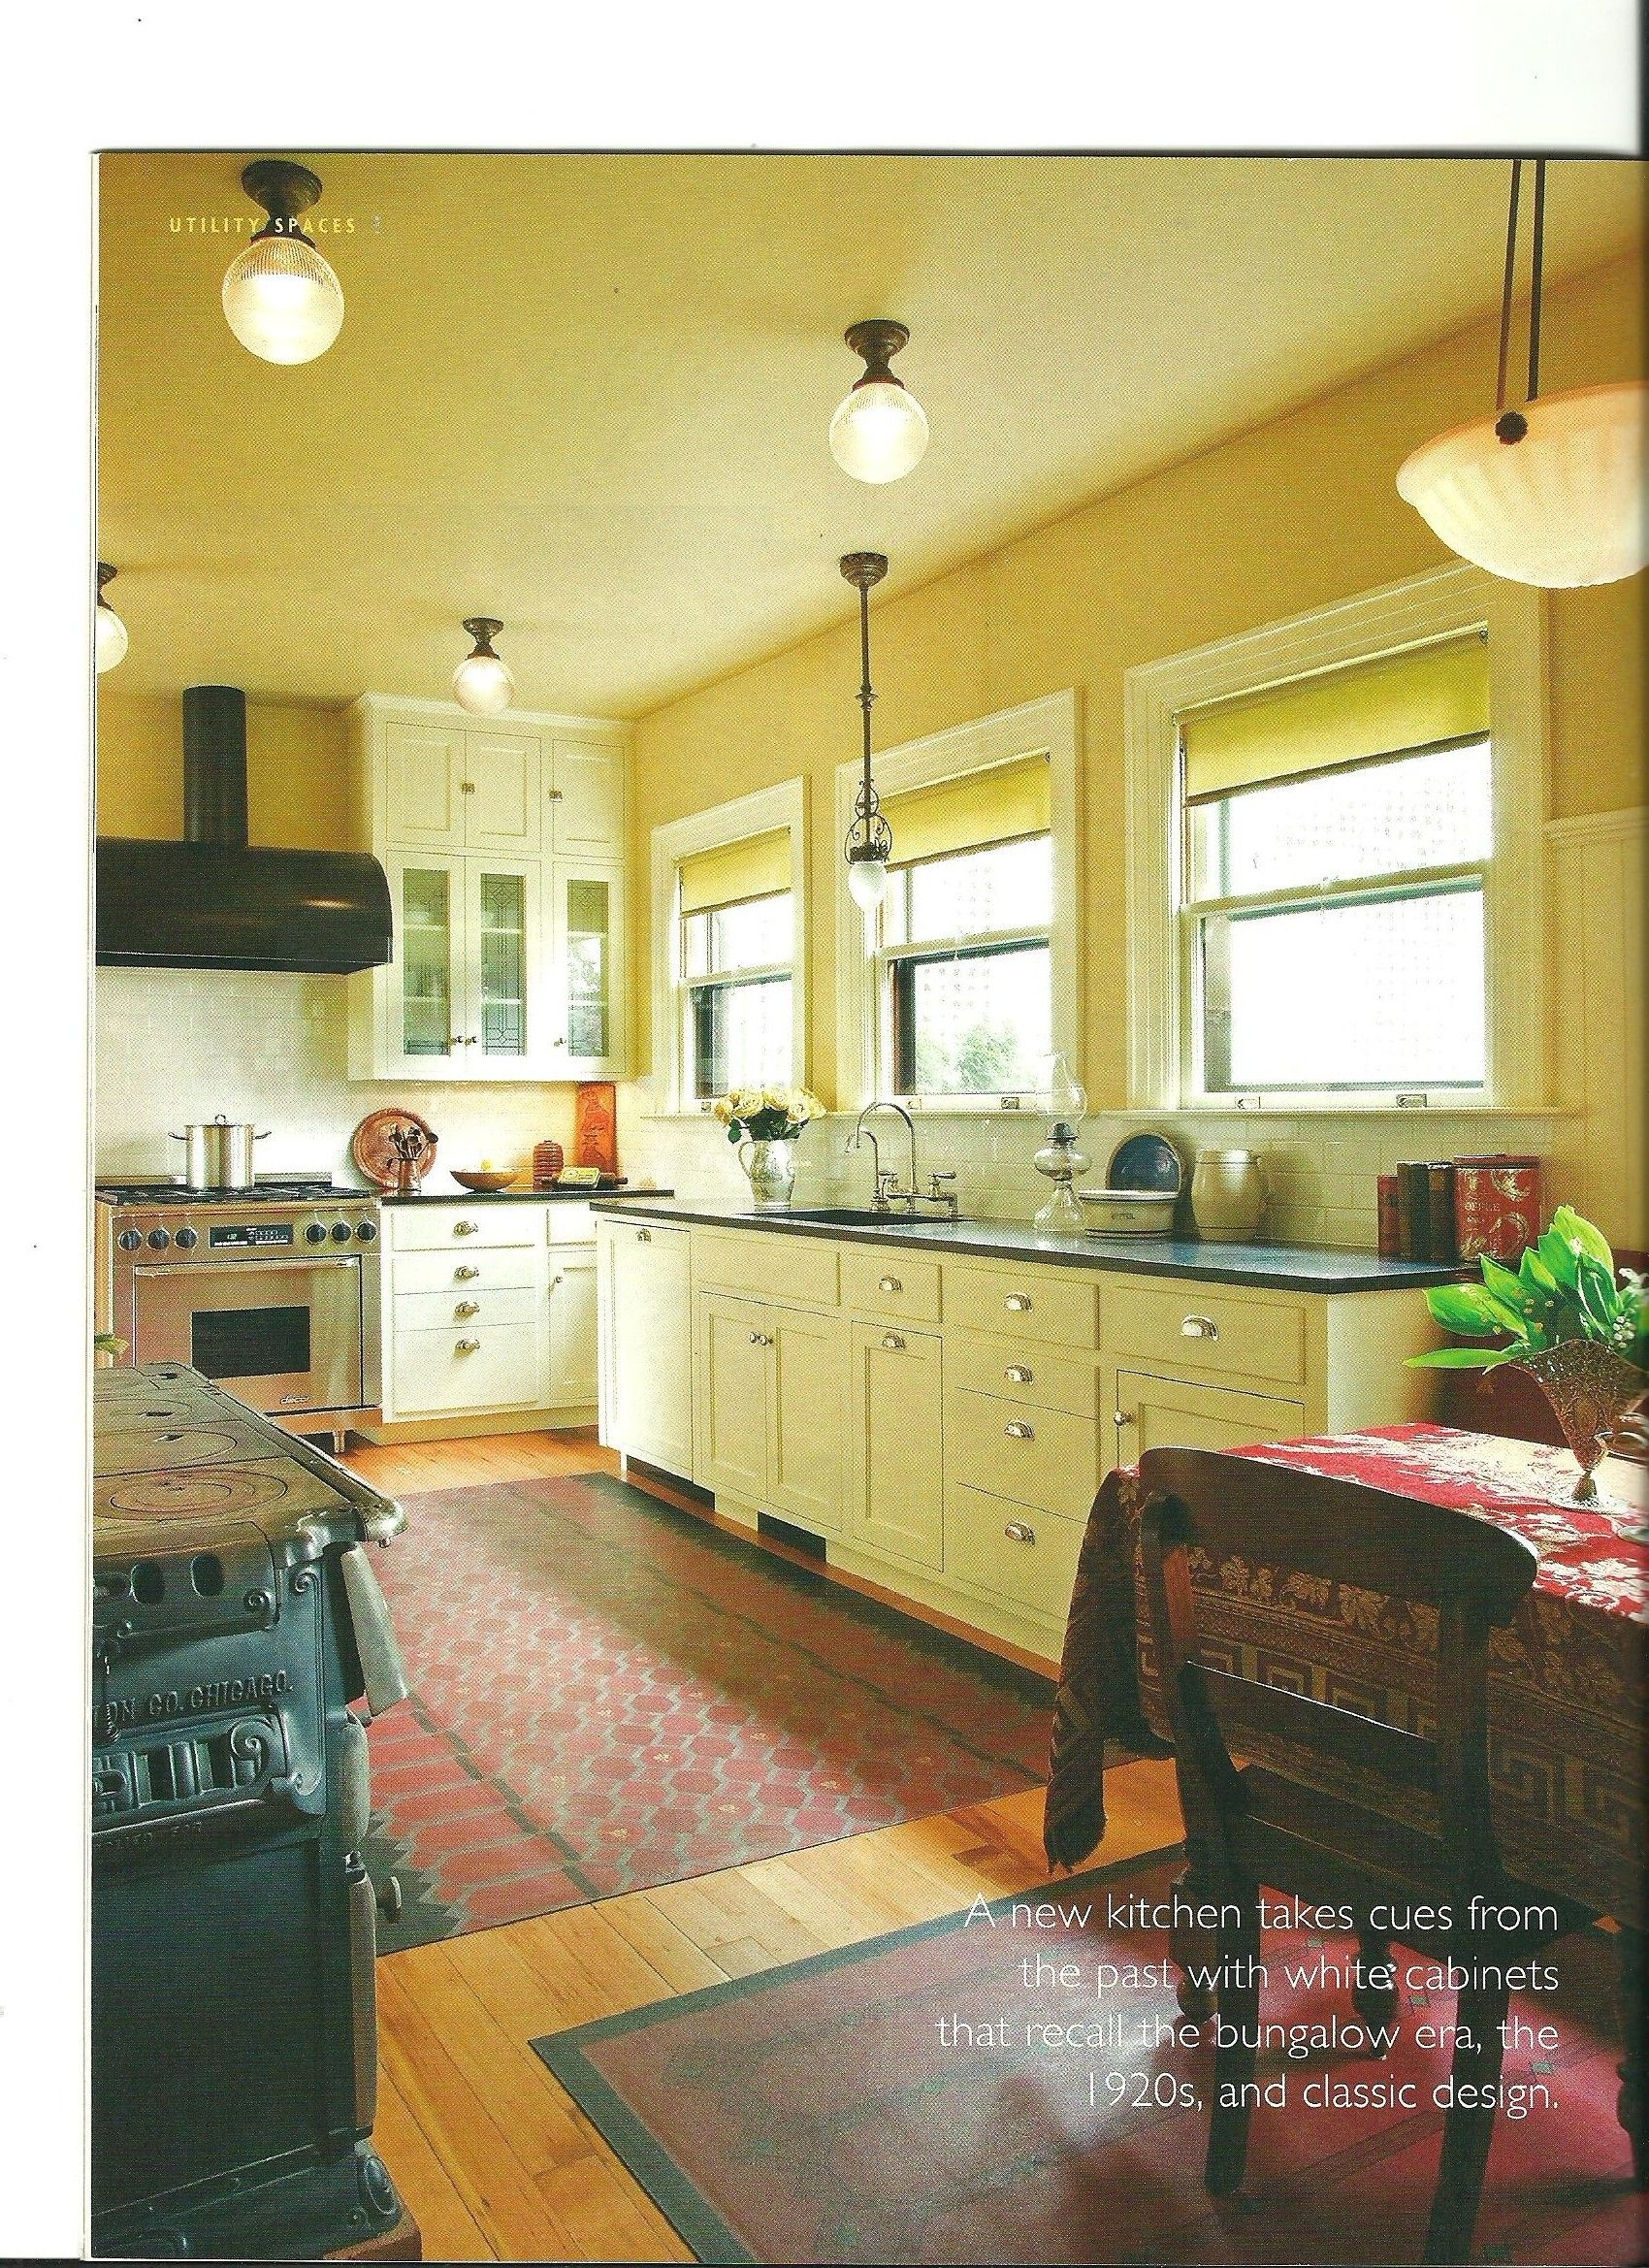 Simple Cotton Shades in a Portland Kitchen | Home improvement ...